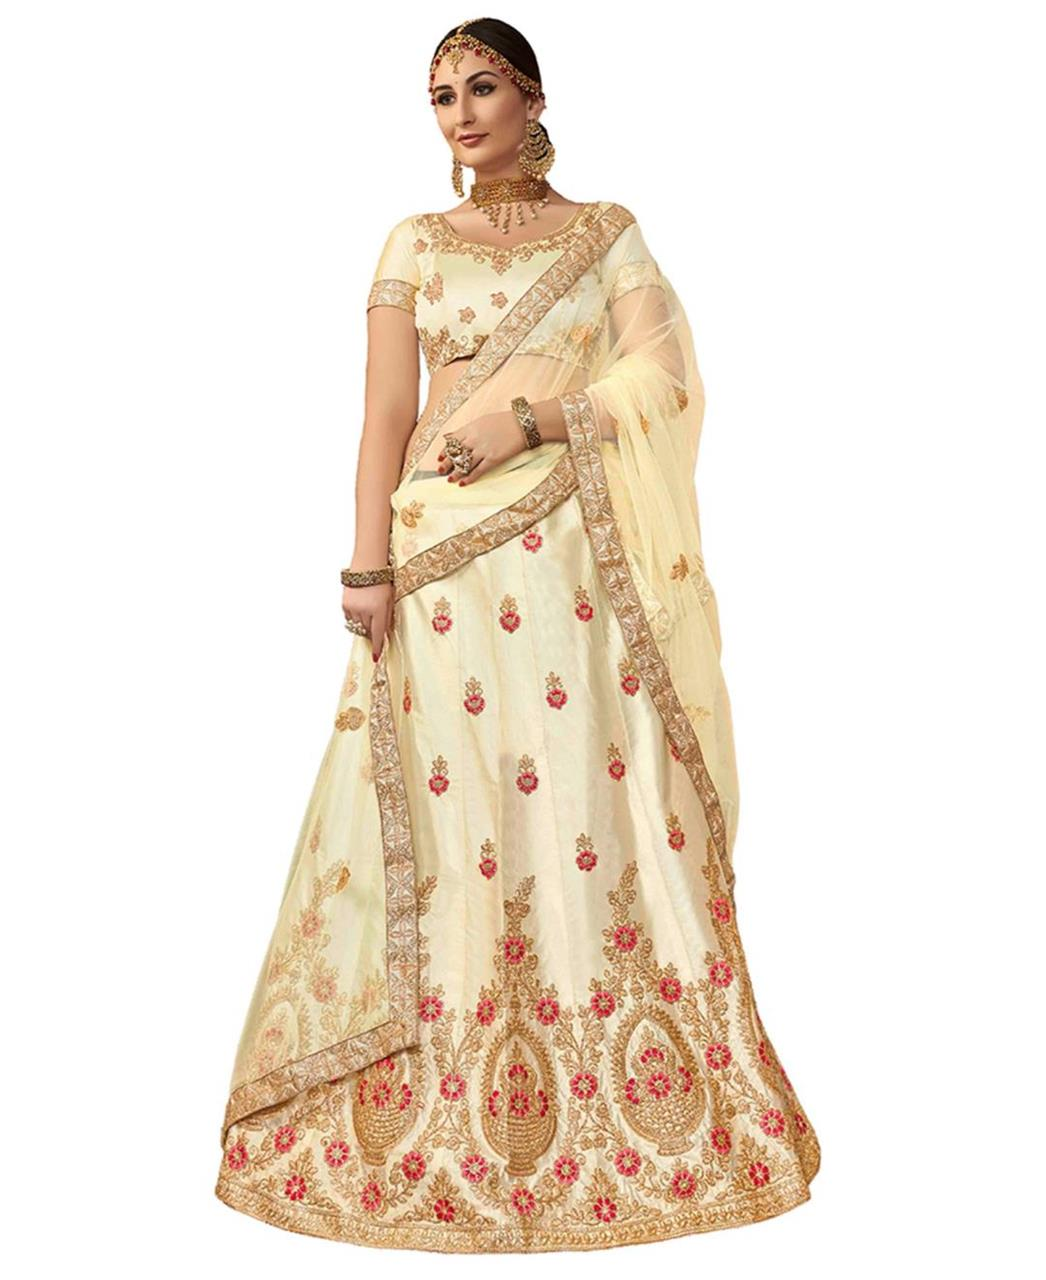 Embroidered Silk Cream Circular Lehenga Choli Ghagra